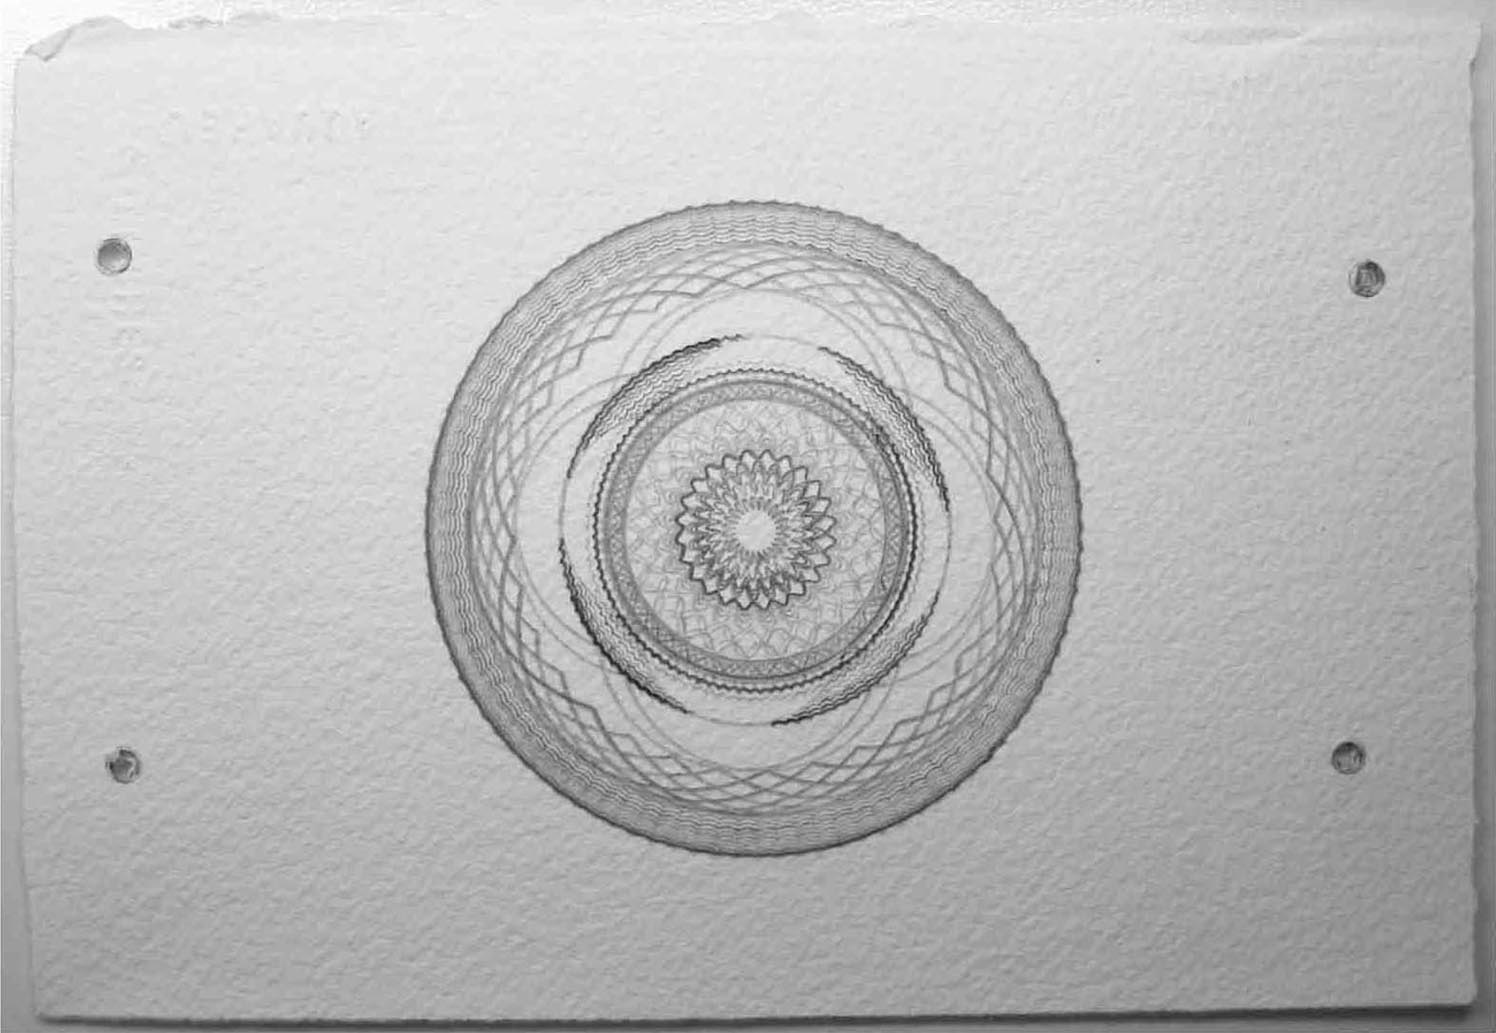 Handmade Geometric Drawing on Paper Kate Ive